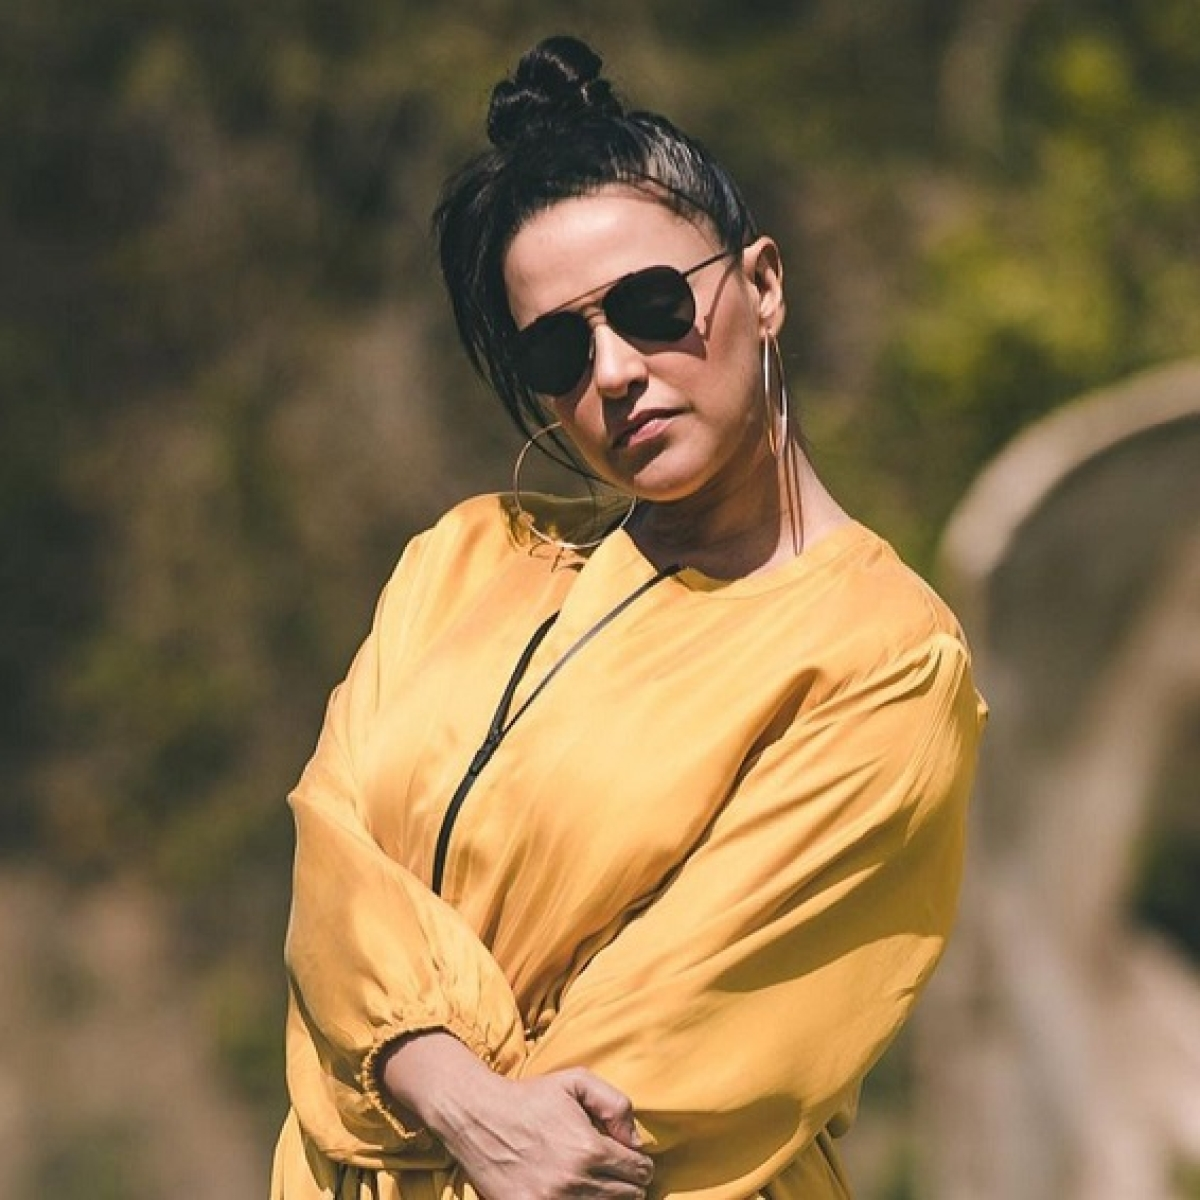 Neha Dhupia to star in and produce short film, 'Step Out'